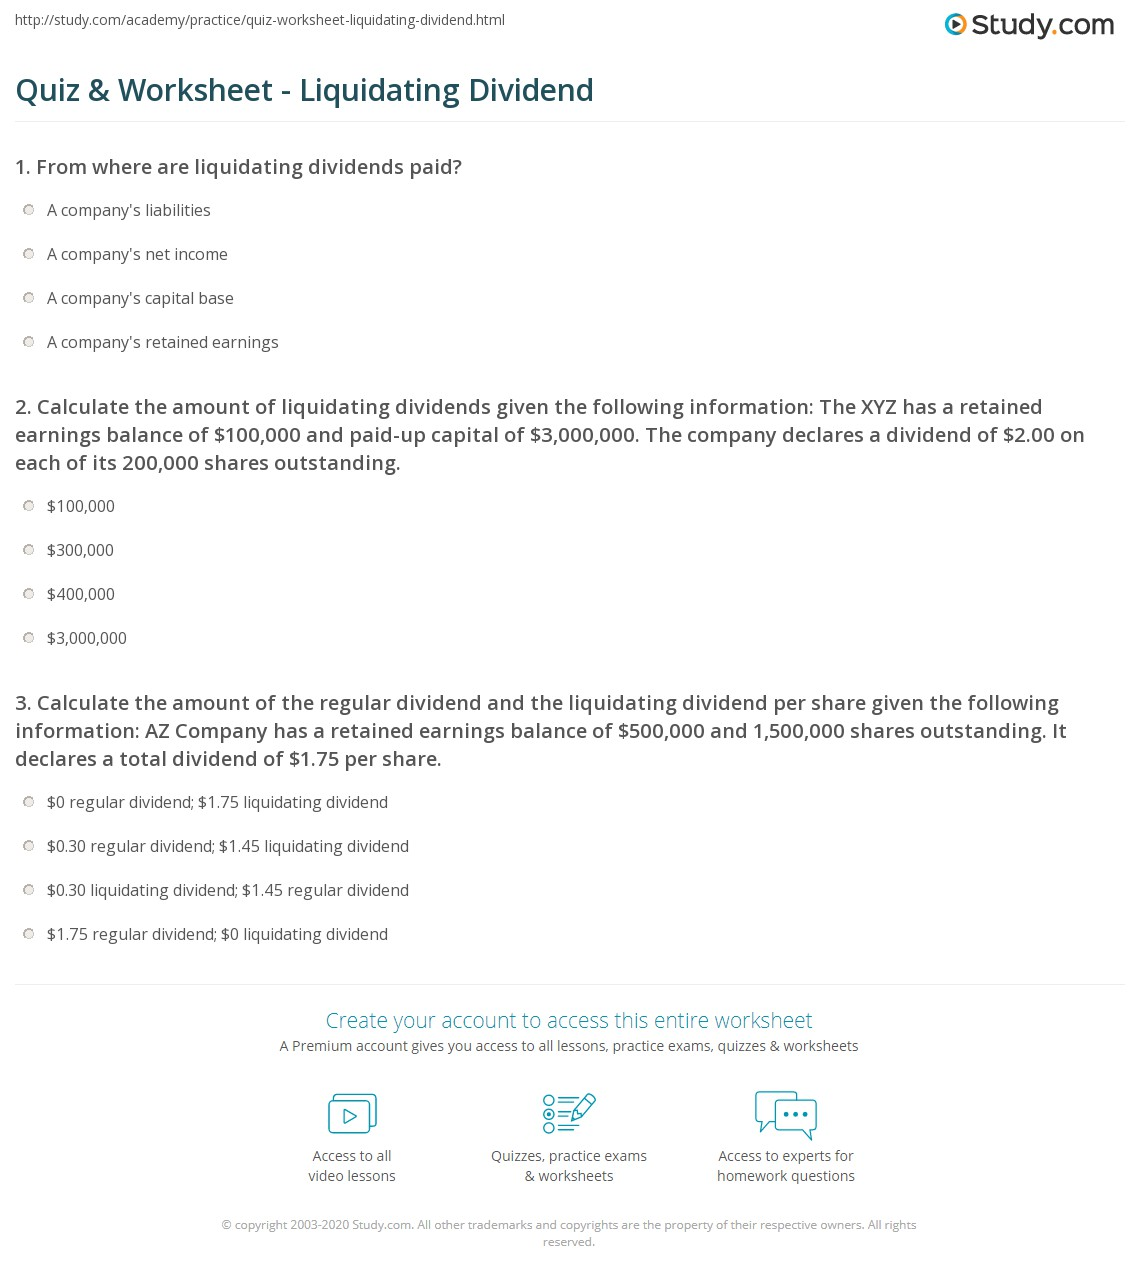 Liquidating dividend retained earnings